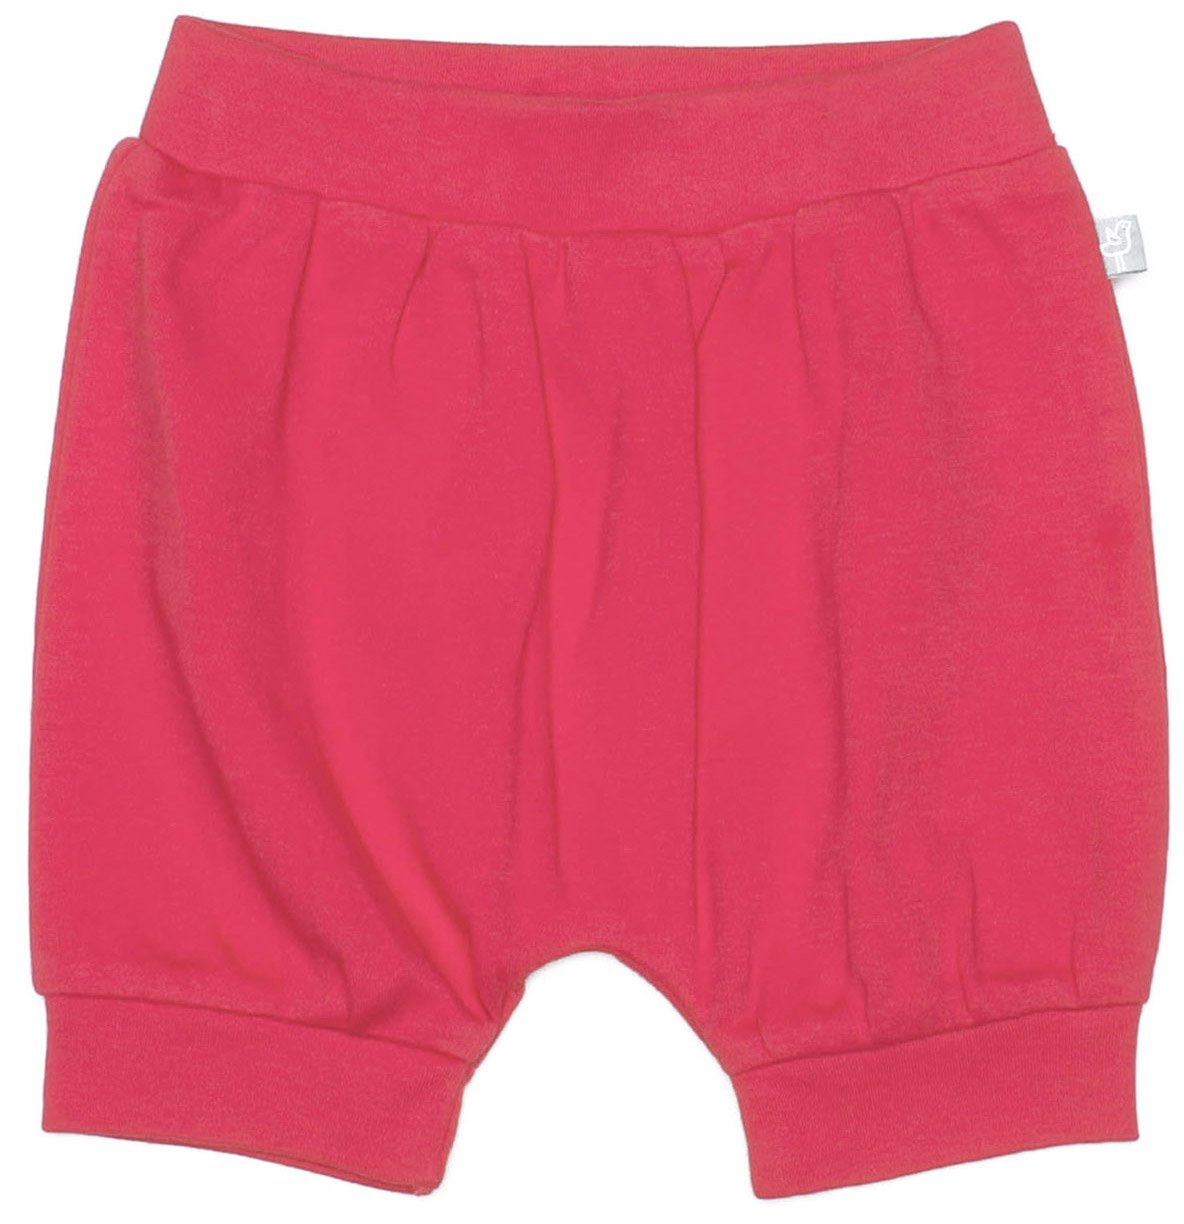 Finn + Emma Organic Cotton Shorts for Baby Boy or Girl – Rose Red, 0-3 Months